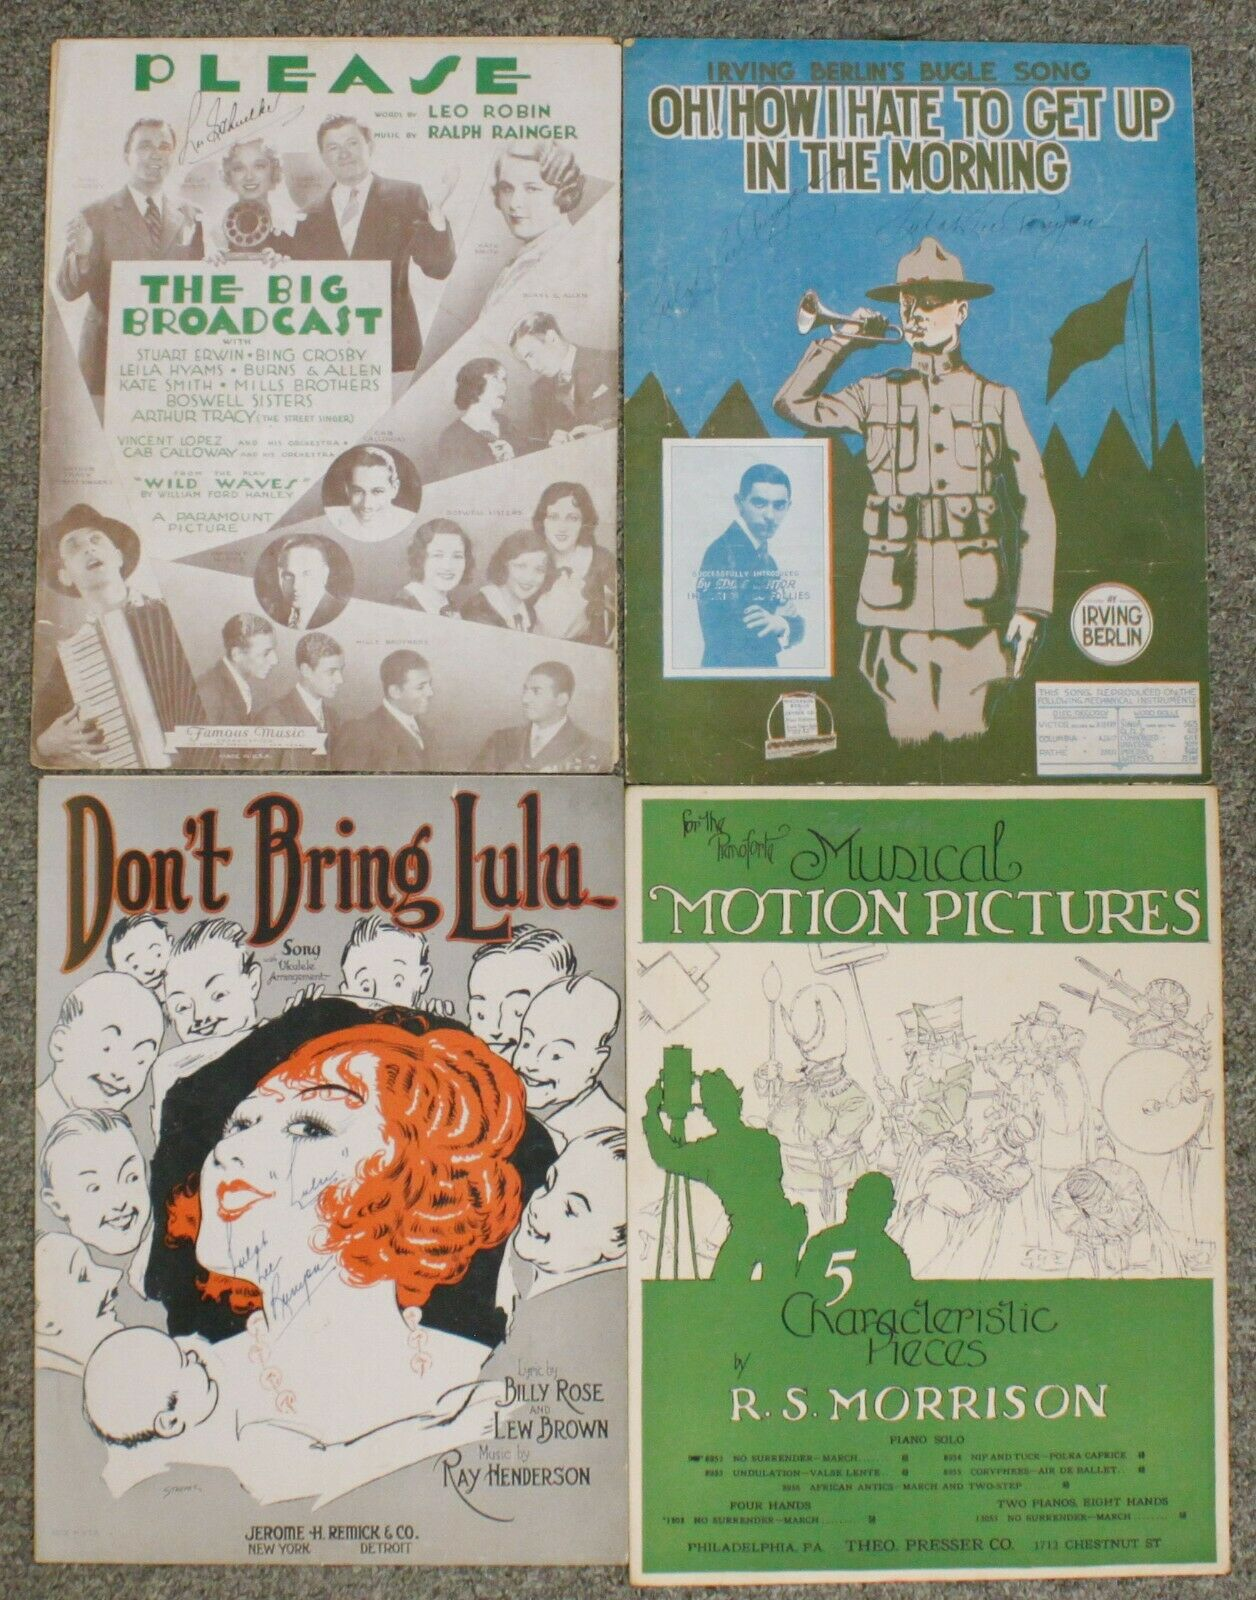 Please Big Broadcast Irving Berlin Motion Pictures Lulu Sheet Music Mixed Lot - $14.95